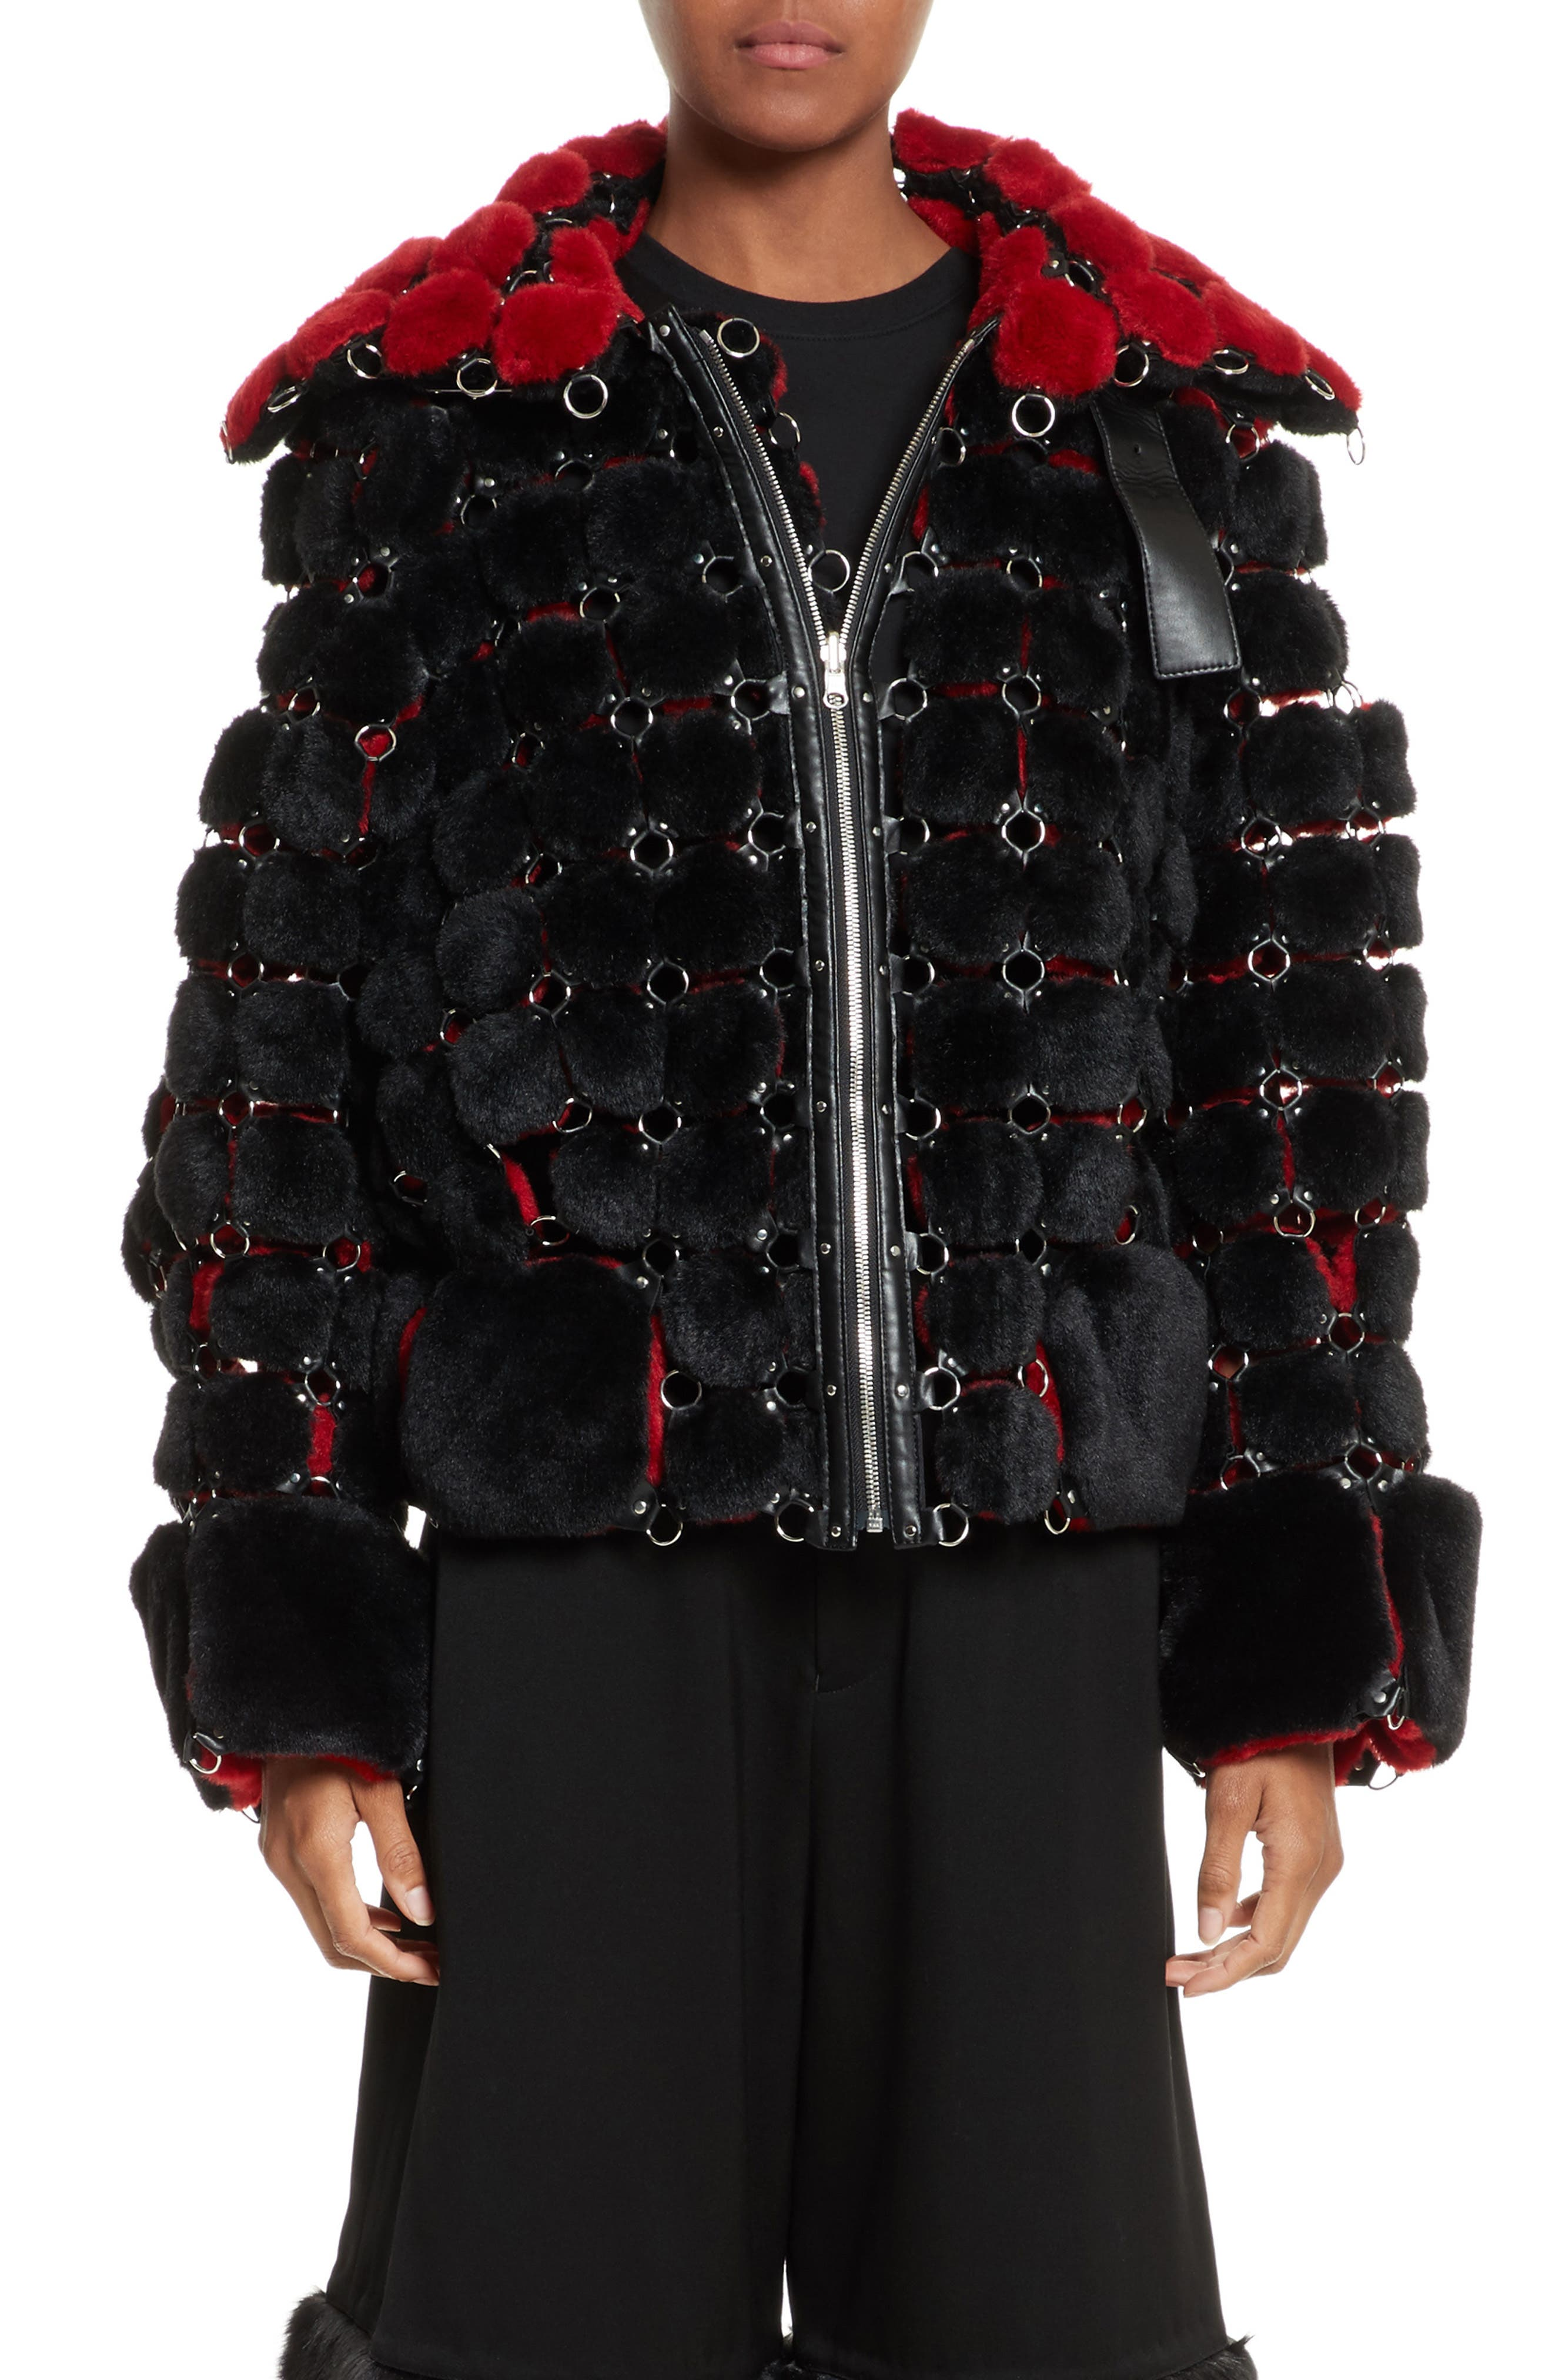 Faux Fur Jacket with Chain Mail Detail,                         Main,                         color, Black/ Red